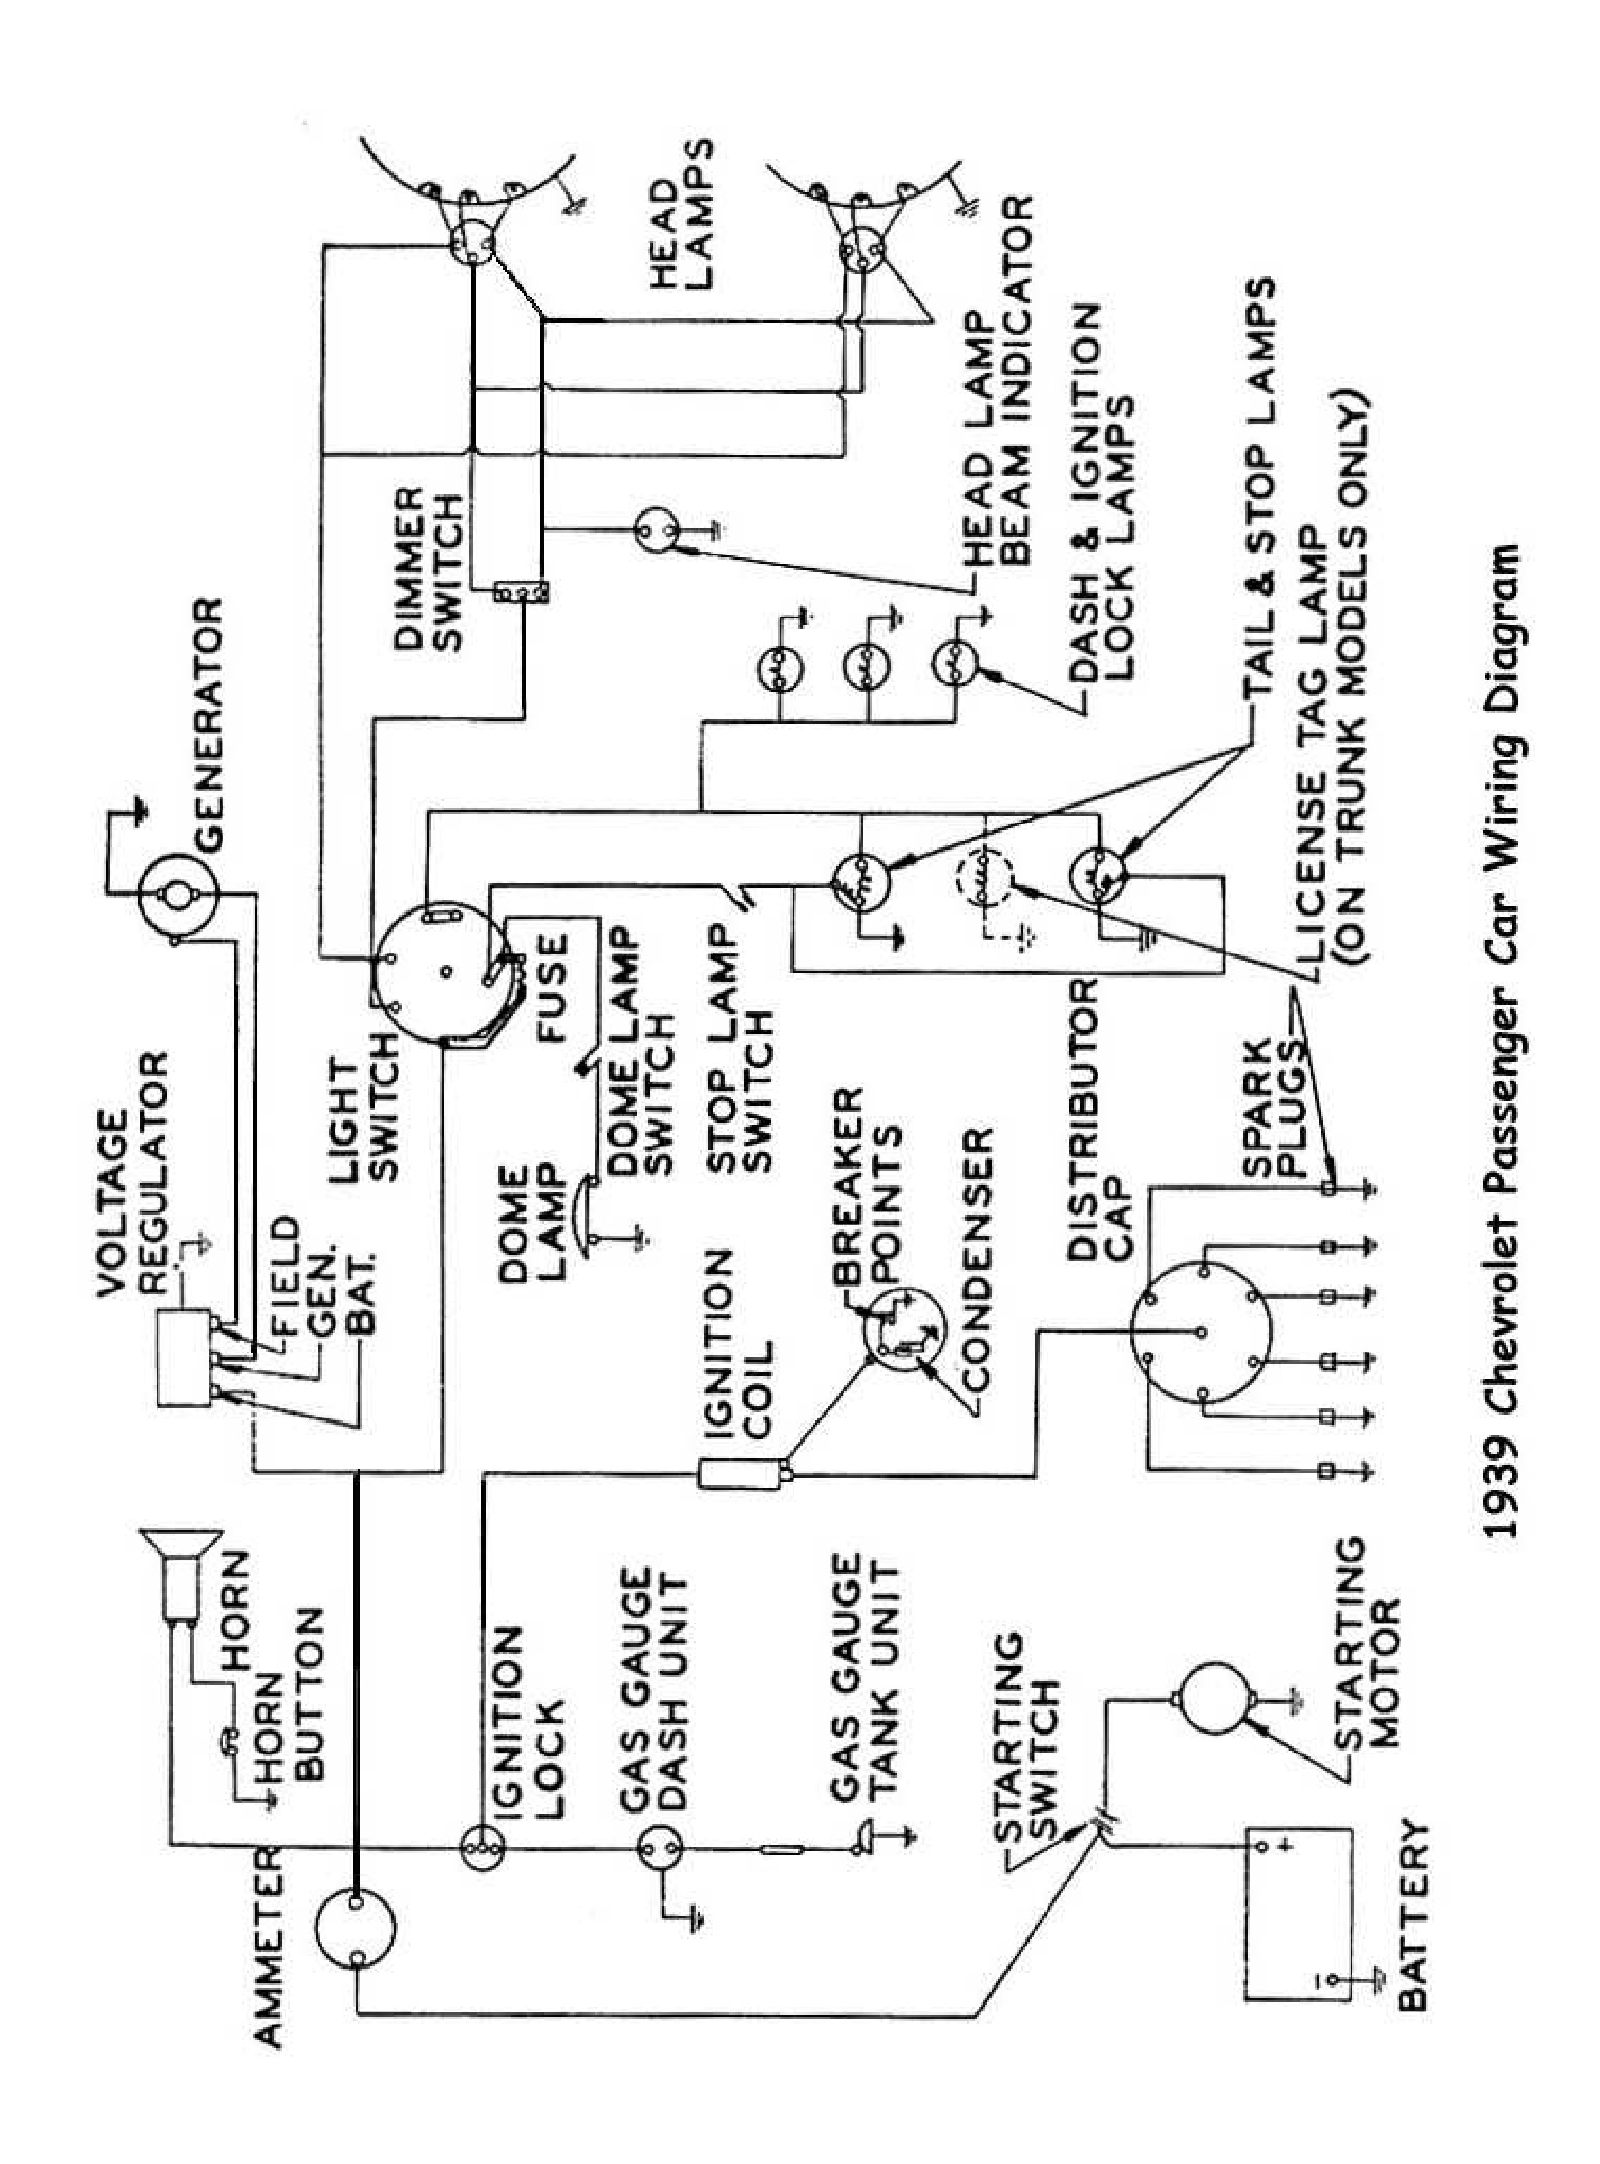 Chevy Wiring diagrams on lighting in kitchen, lighting control diagrams, lighting switch diagrams, lighting for bathrooms, lighting in bedroom, lighting symbols, lighting relay diagrams, lighting circuit diagram, lighting control panel, electrical diagrams, air conditioning diagrams, lighting logo, lighting shabbat candles,